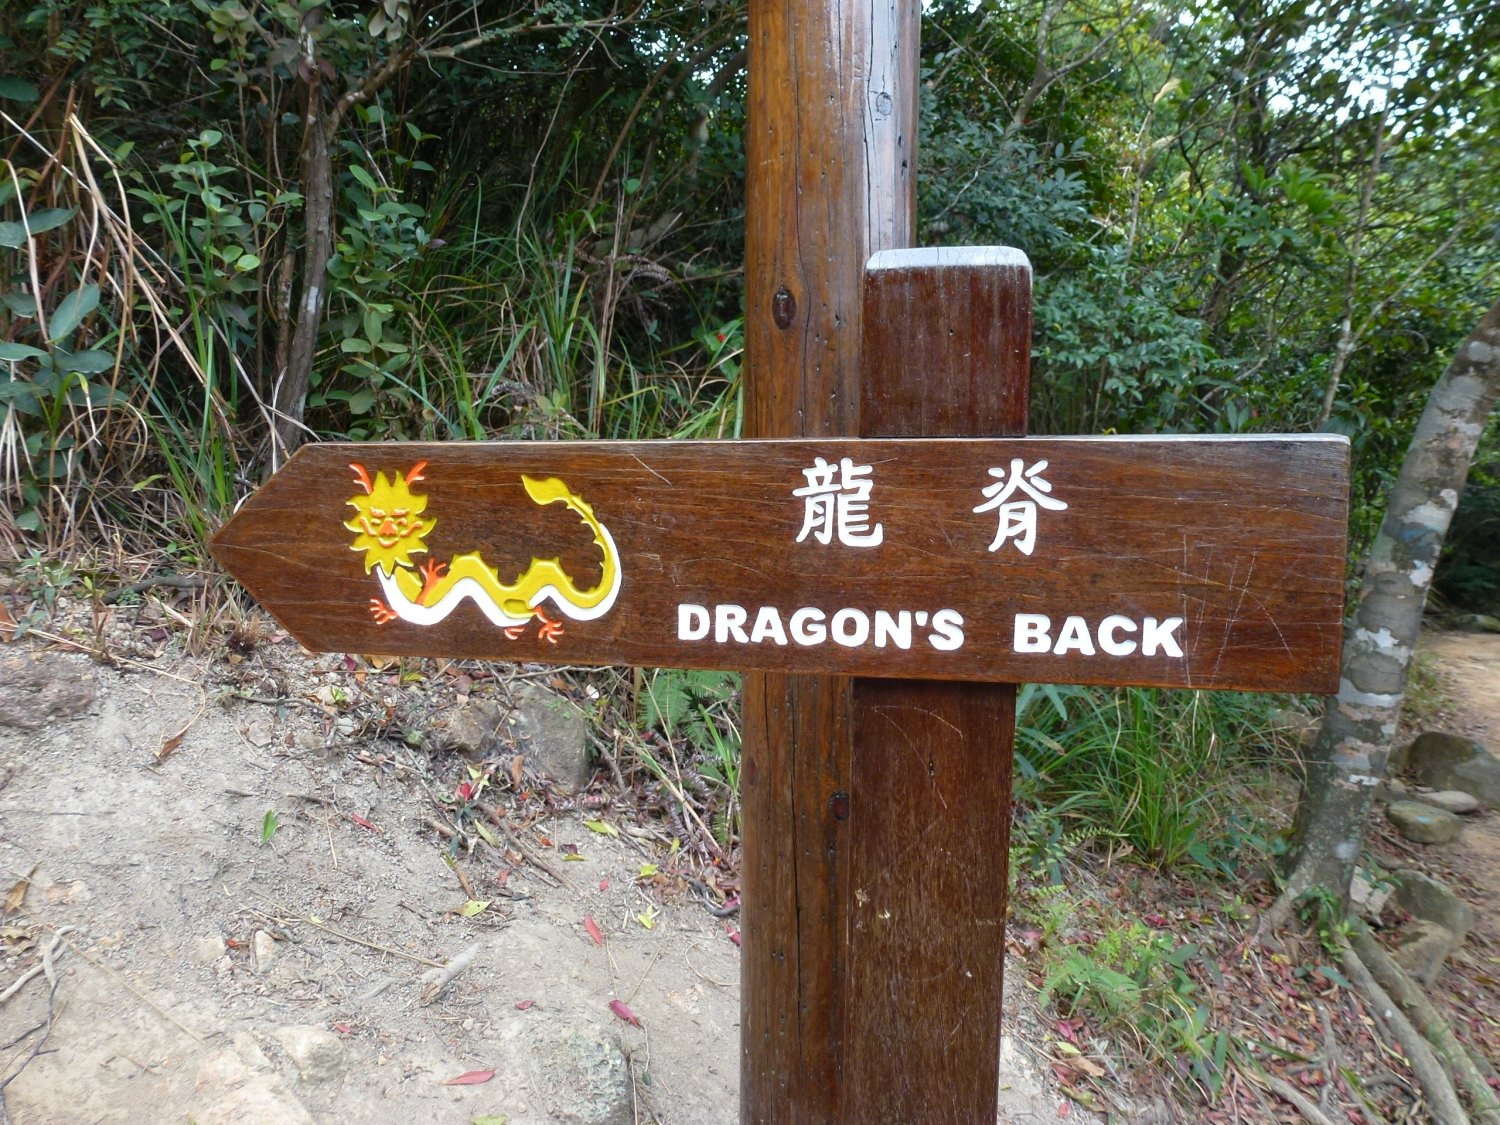 Dragons' Back